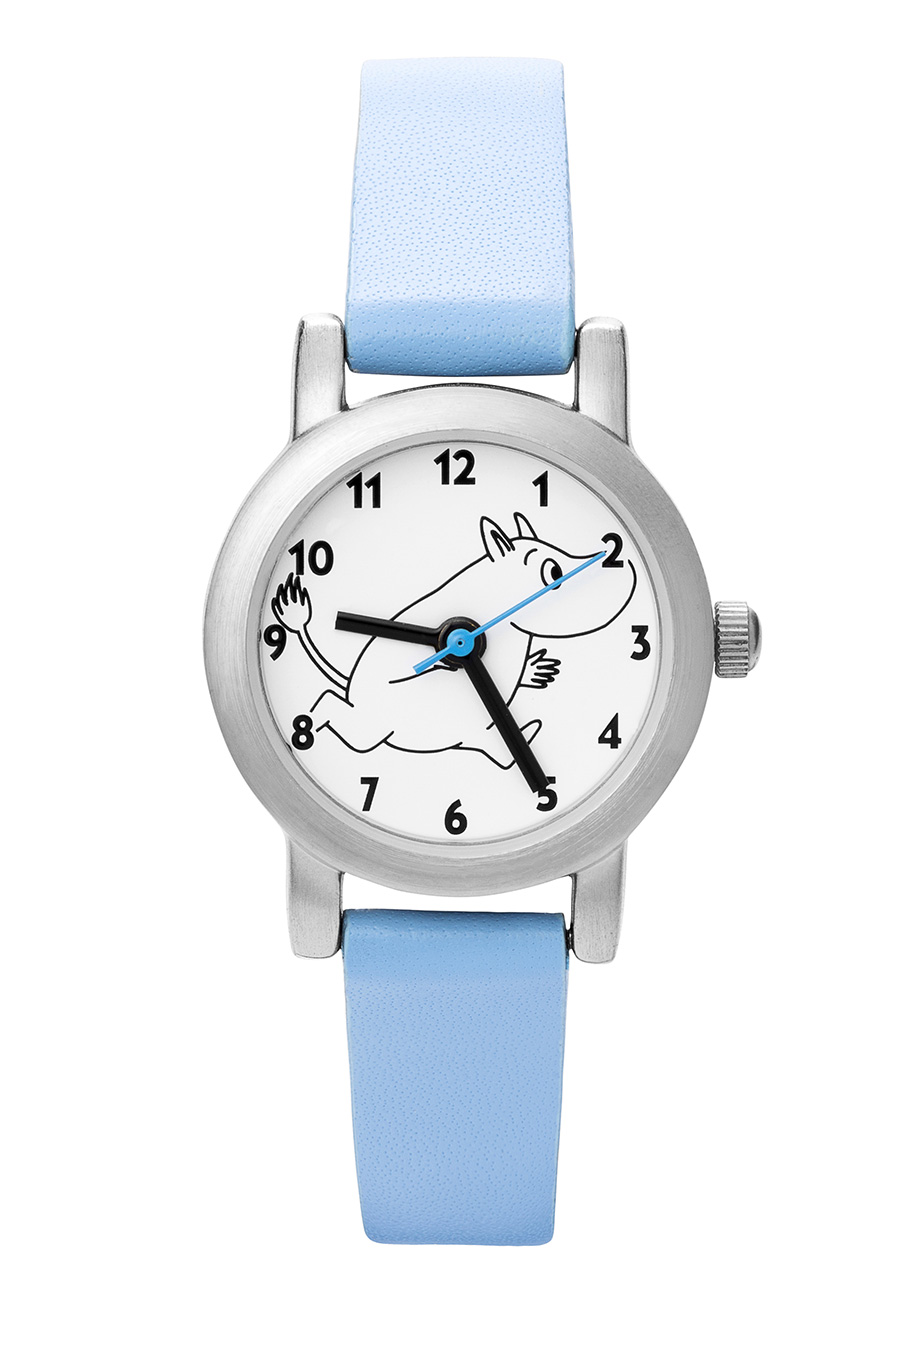 Saurum Moomintroll watch